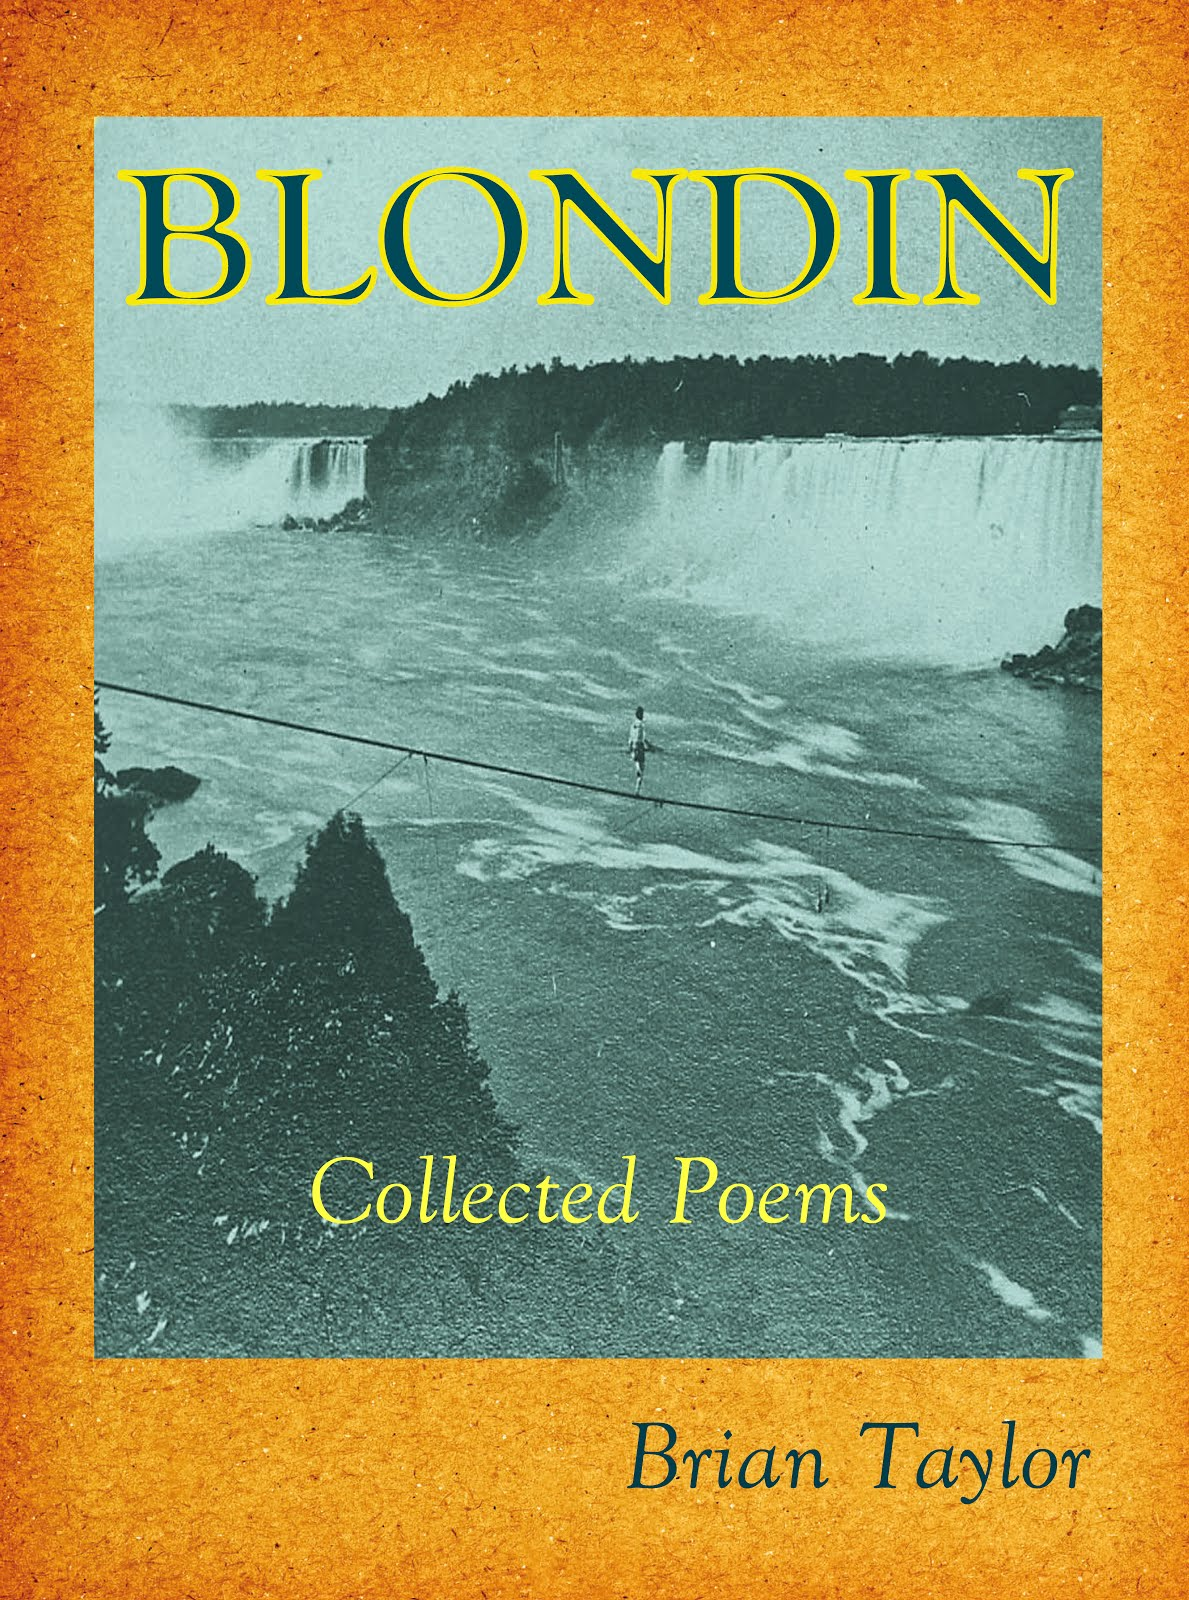 NEW EDITION 2019 BLONDIN Collected Poems by Brian Taylor